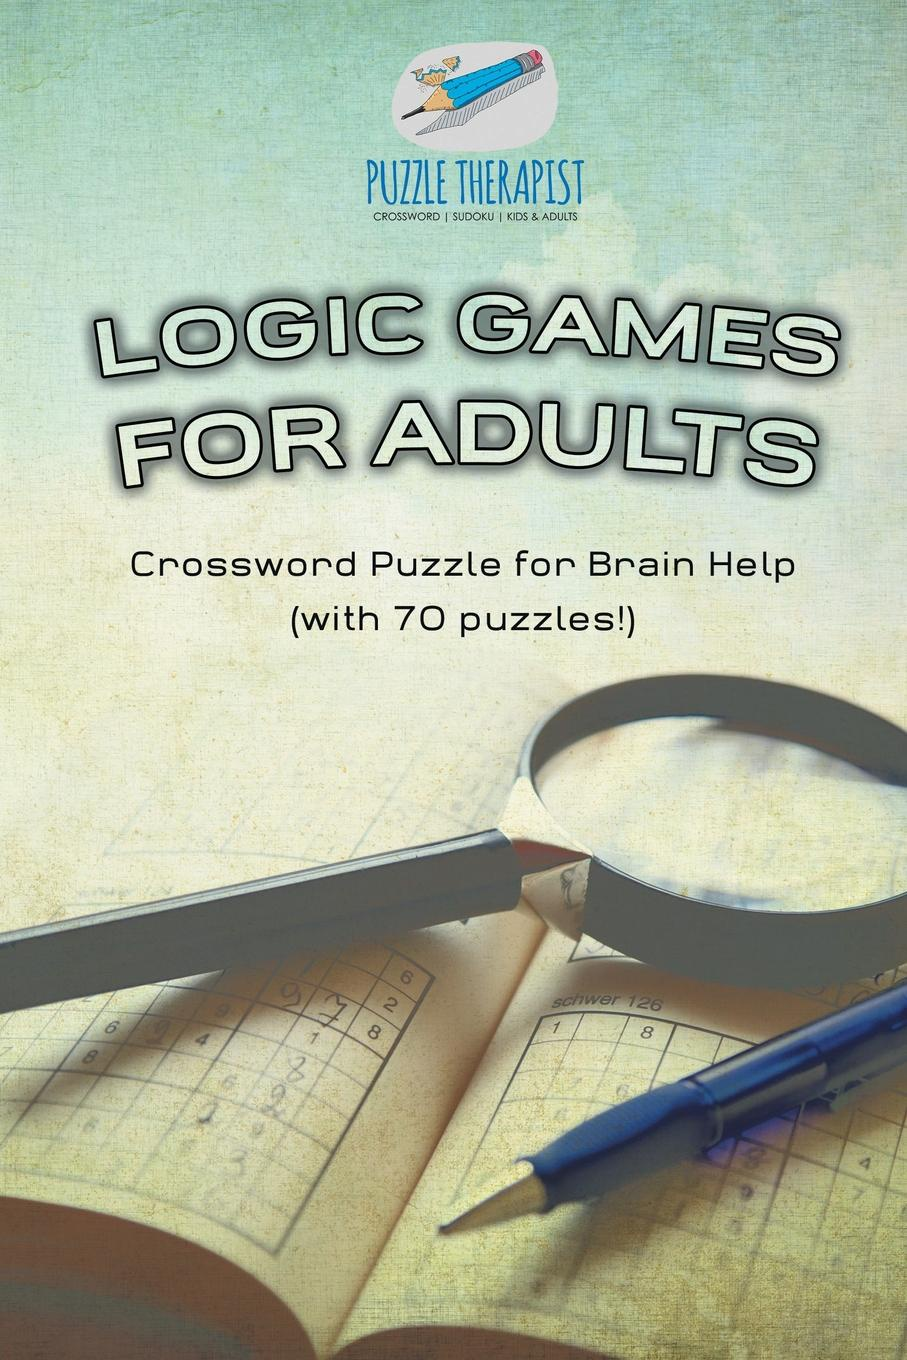 Puzzle Therapist Logic Games for Adults . Crossword Puzzle for Brain Help (with 70 puzzles!)